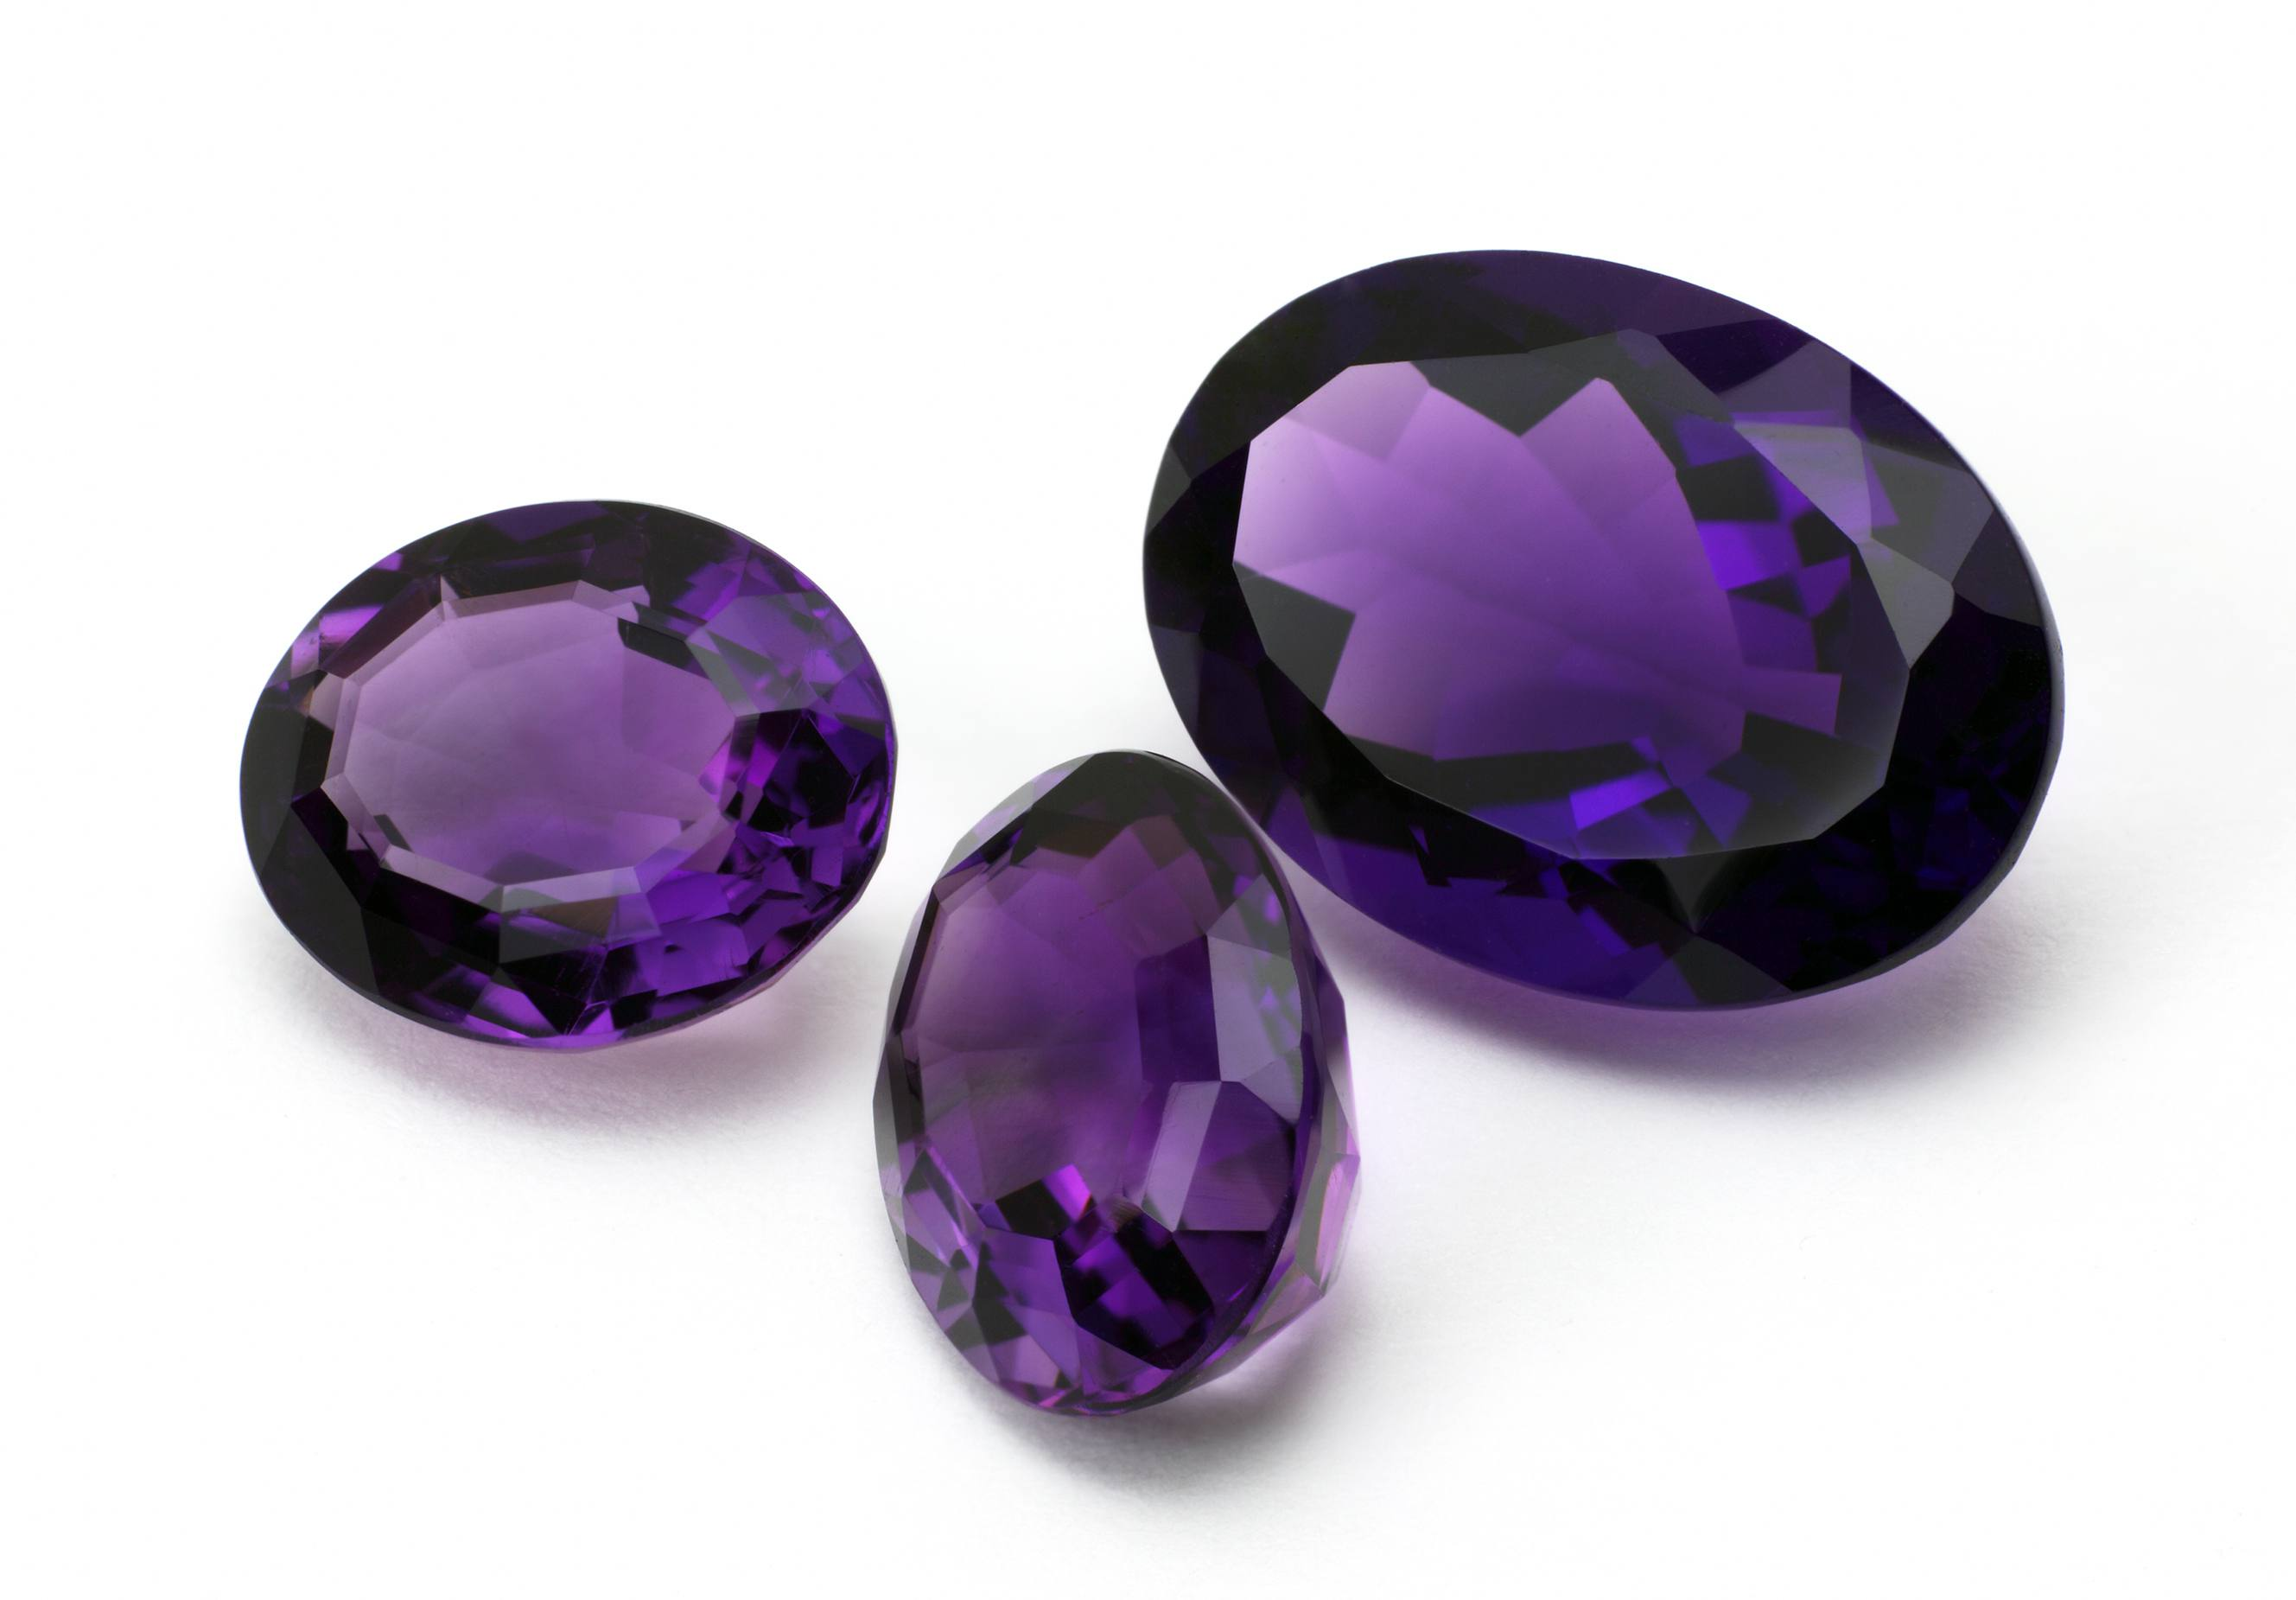 properties meaning value gemstone lc jewelry more garnet shop stone purple color education